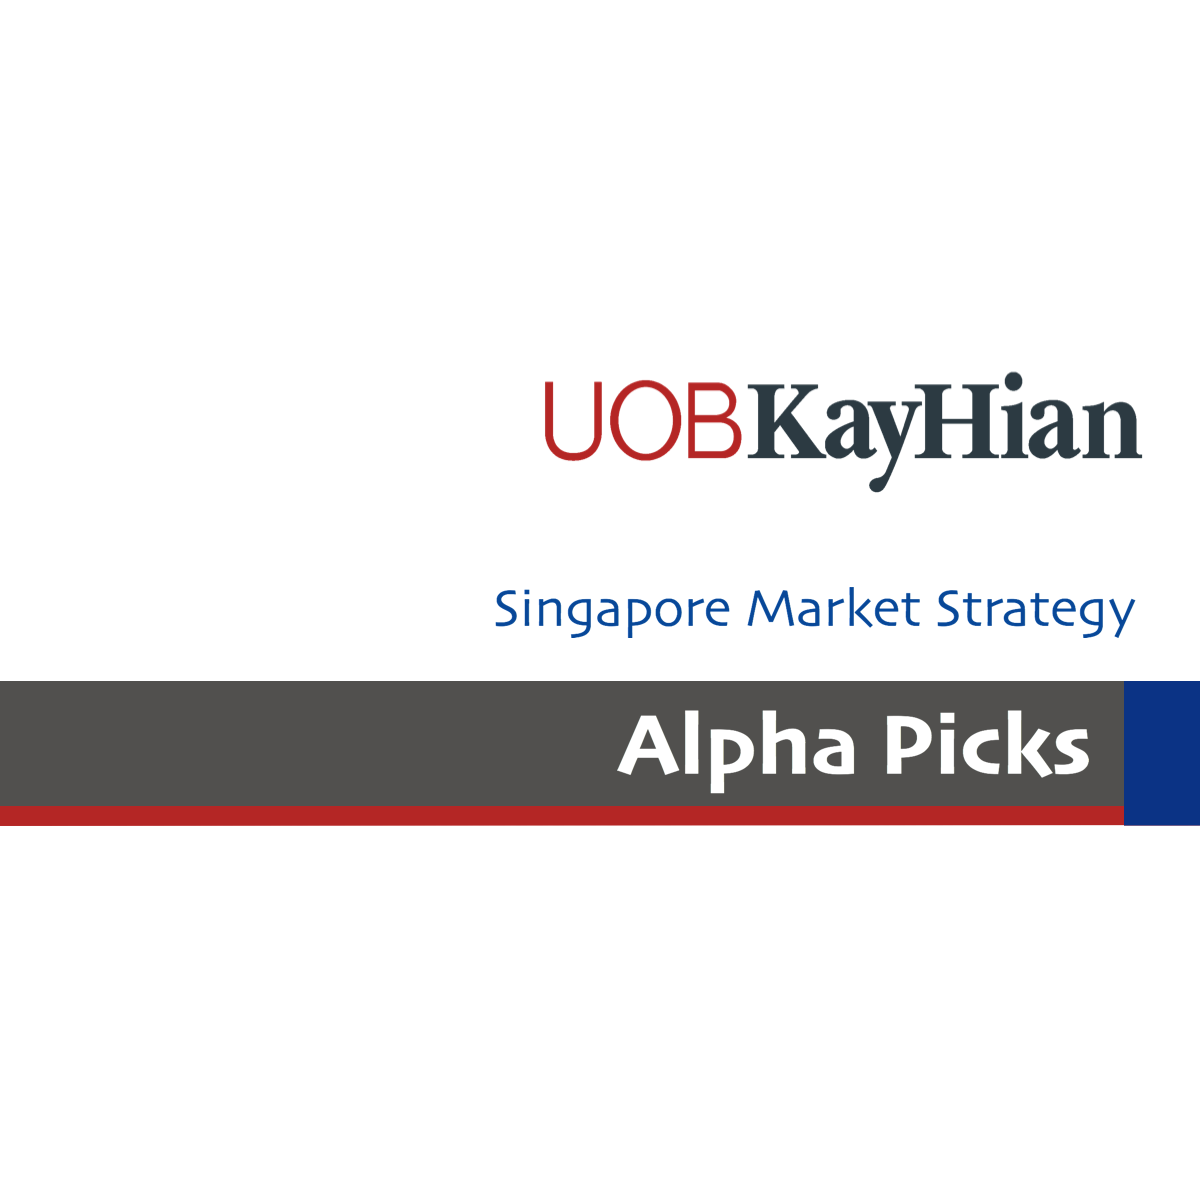 Singapore Stock Alpha Picks - UOB Kay Hian 2018-03-02: A Challenging February But Look Ahead